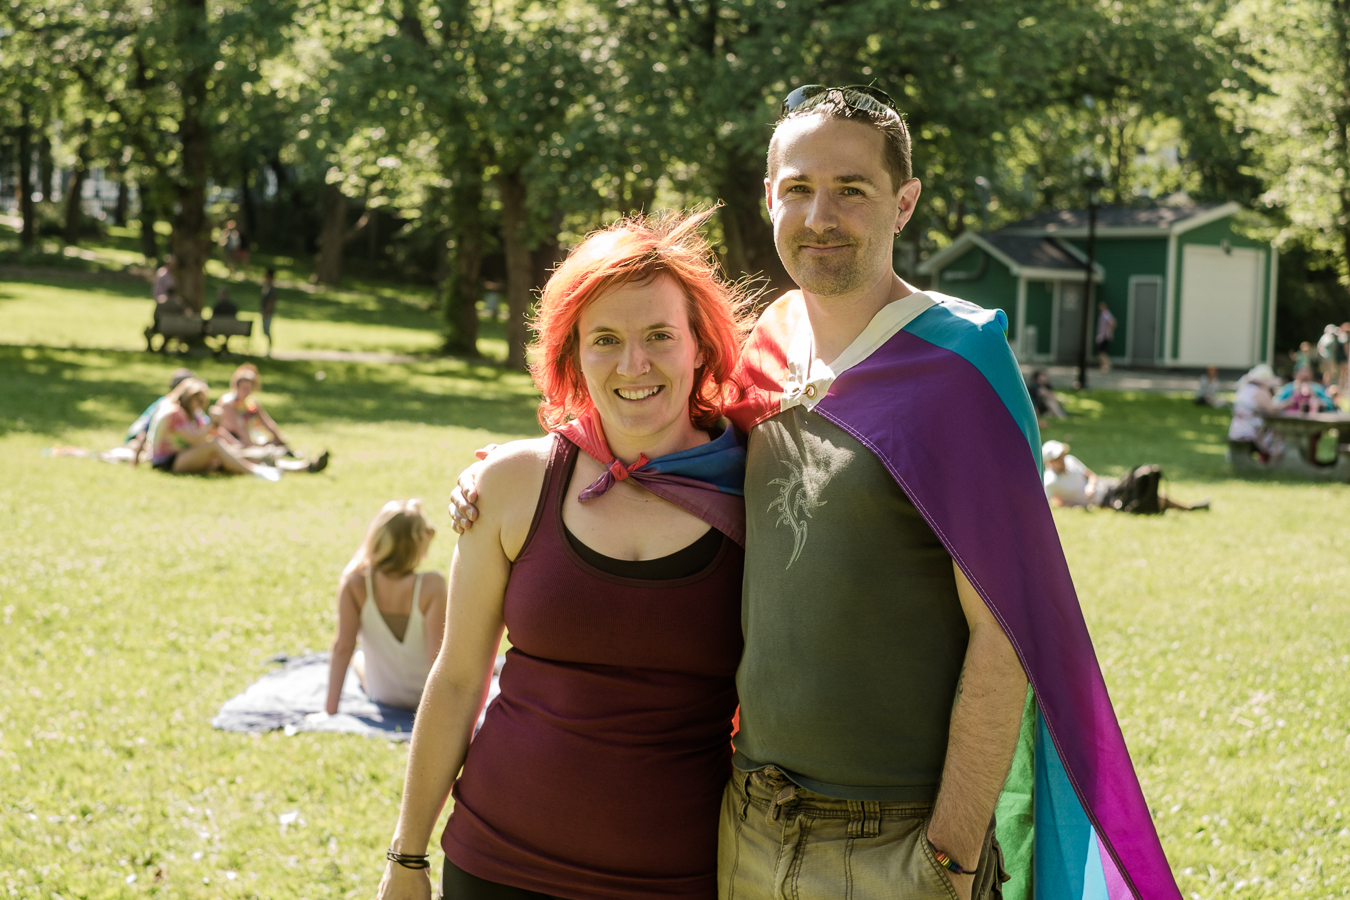 Krista and Christopher show their support by flying the flag as capes - bannerman park